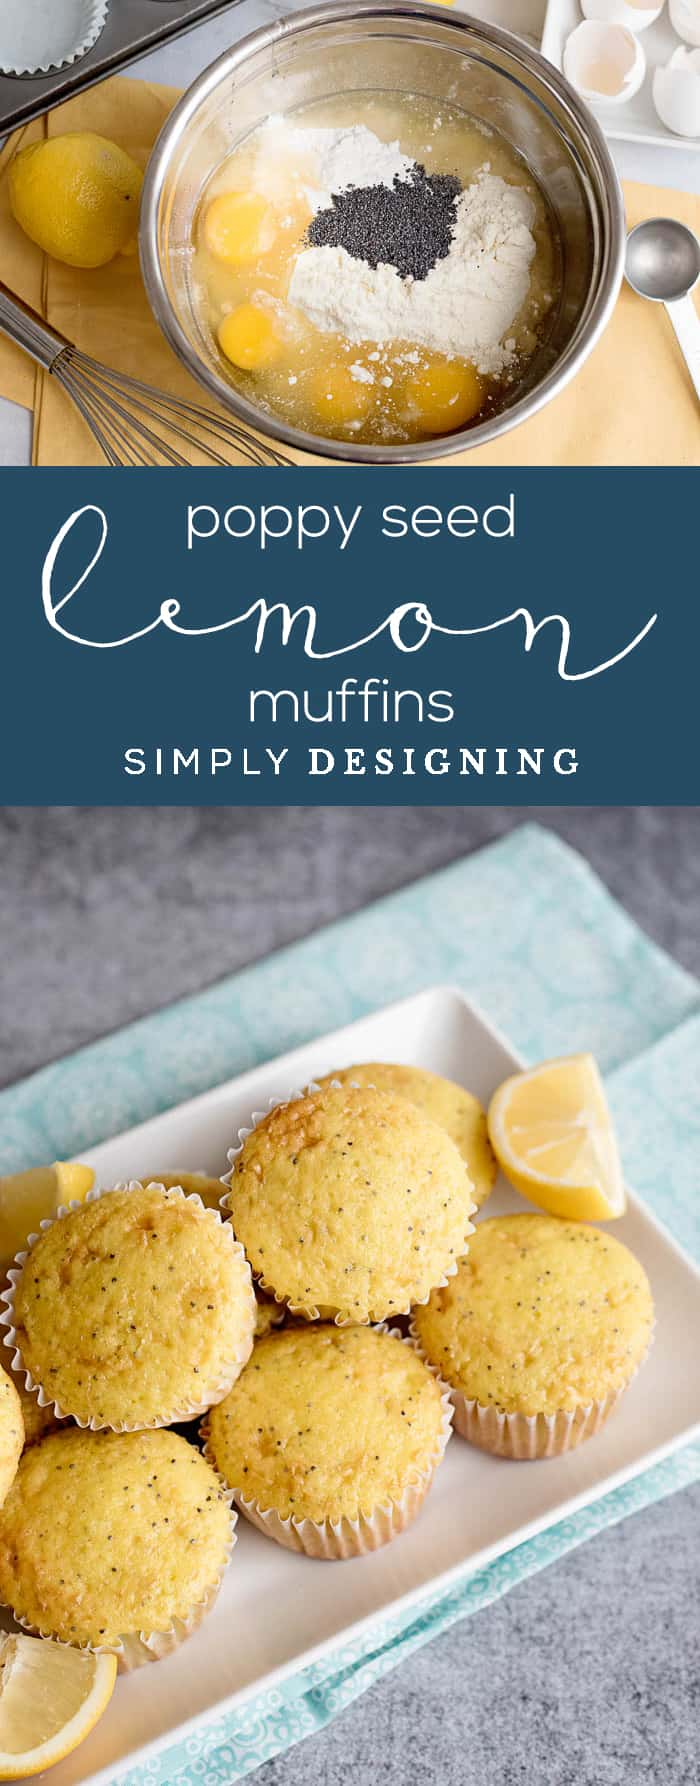 Lemon Muffins with Poppy Seeds - just a few ingredents to make these delicious lemon poppy seed muffins